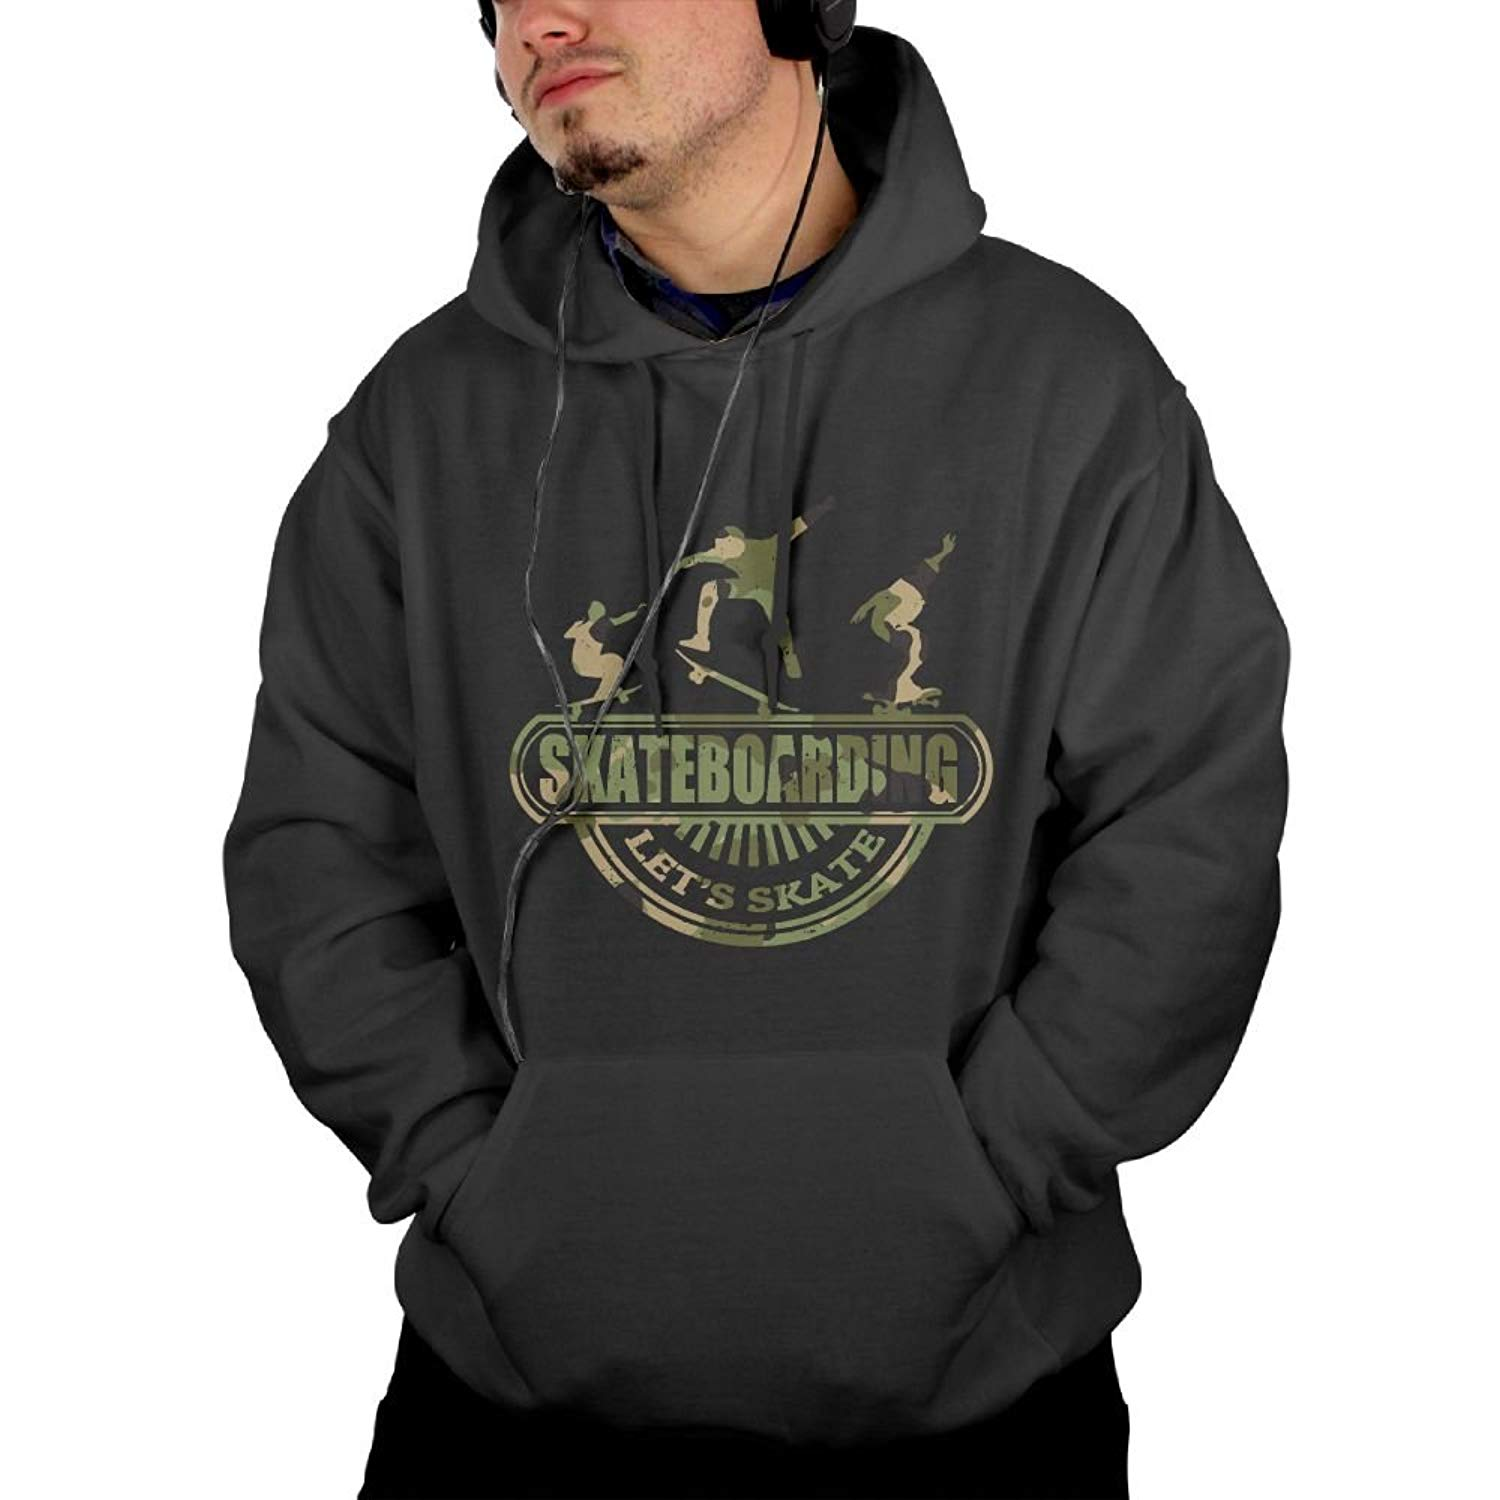 Bstge Mens Stylish Various Printed Style Hoodies